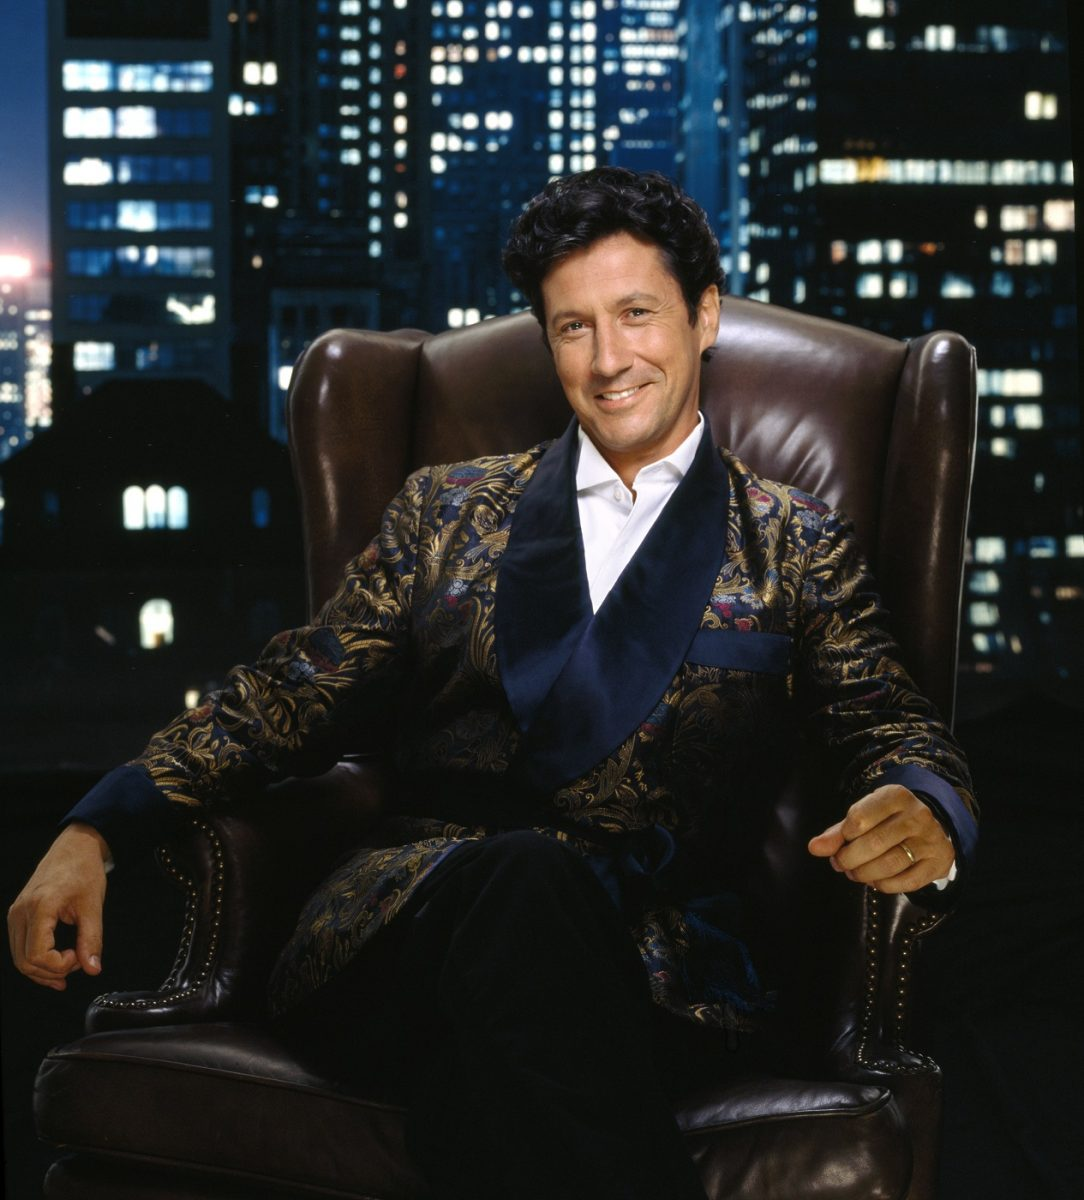 Charles Shaughnessy as Maxwell Sheffield is photographed sitting in a leather chair against a backdrop of the New YorK City skyline